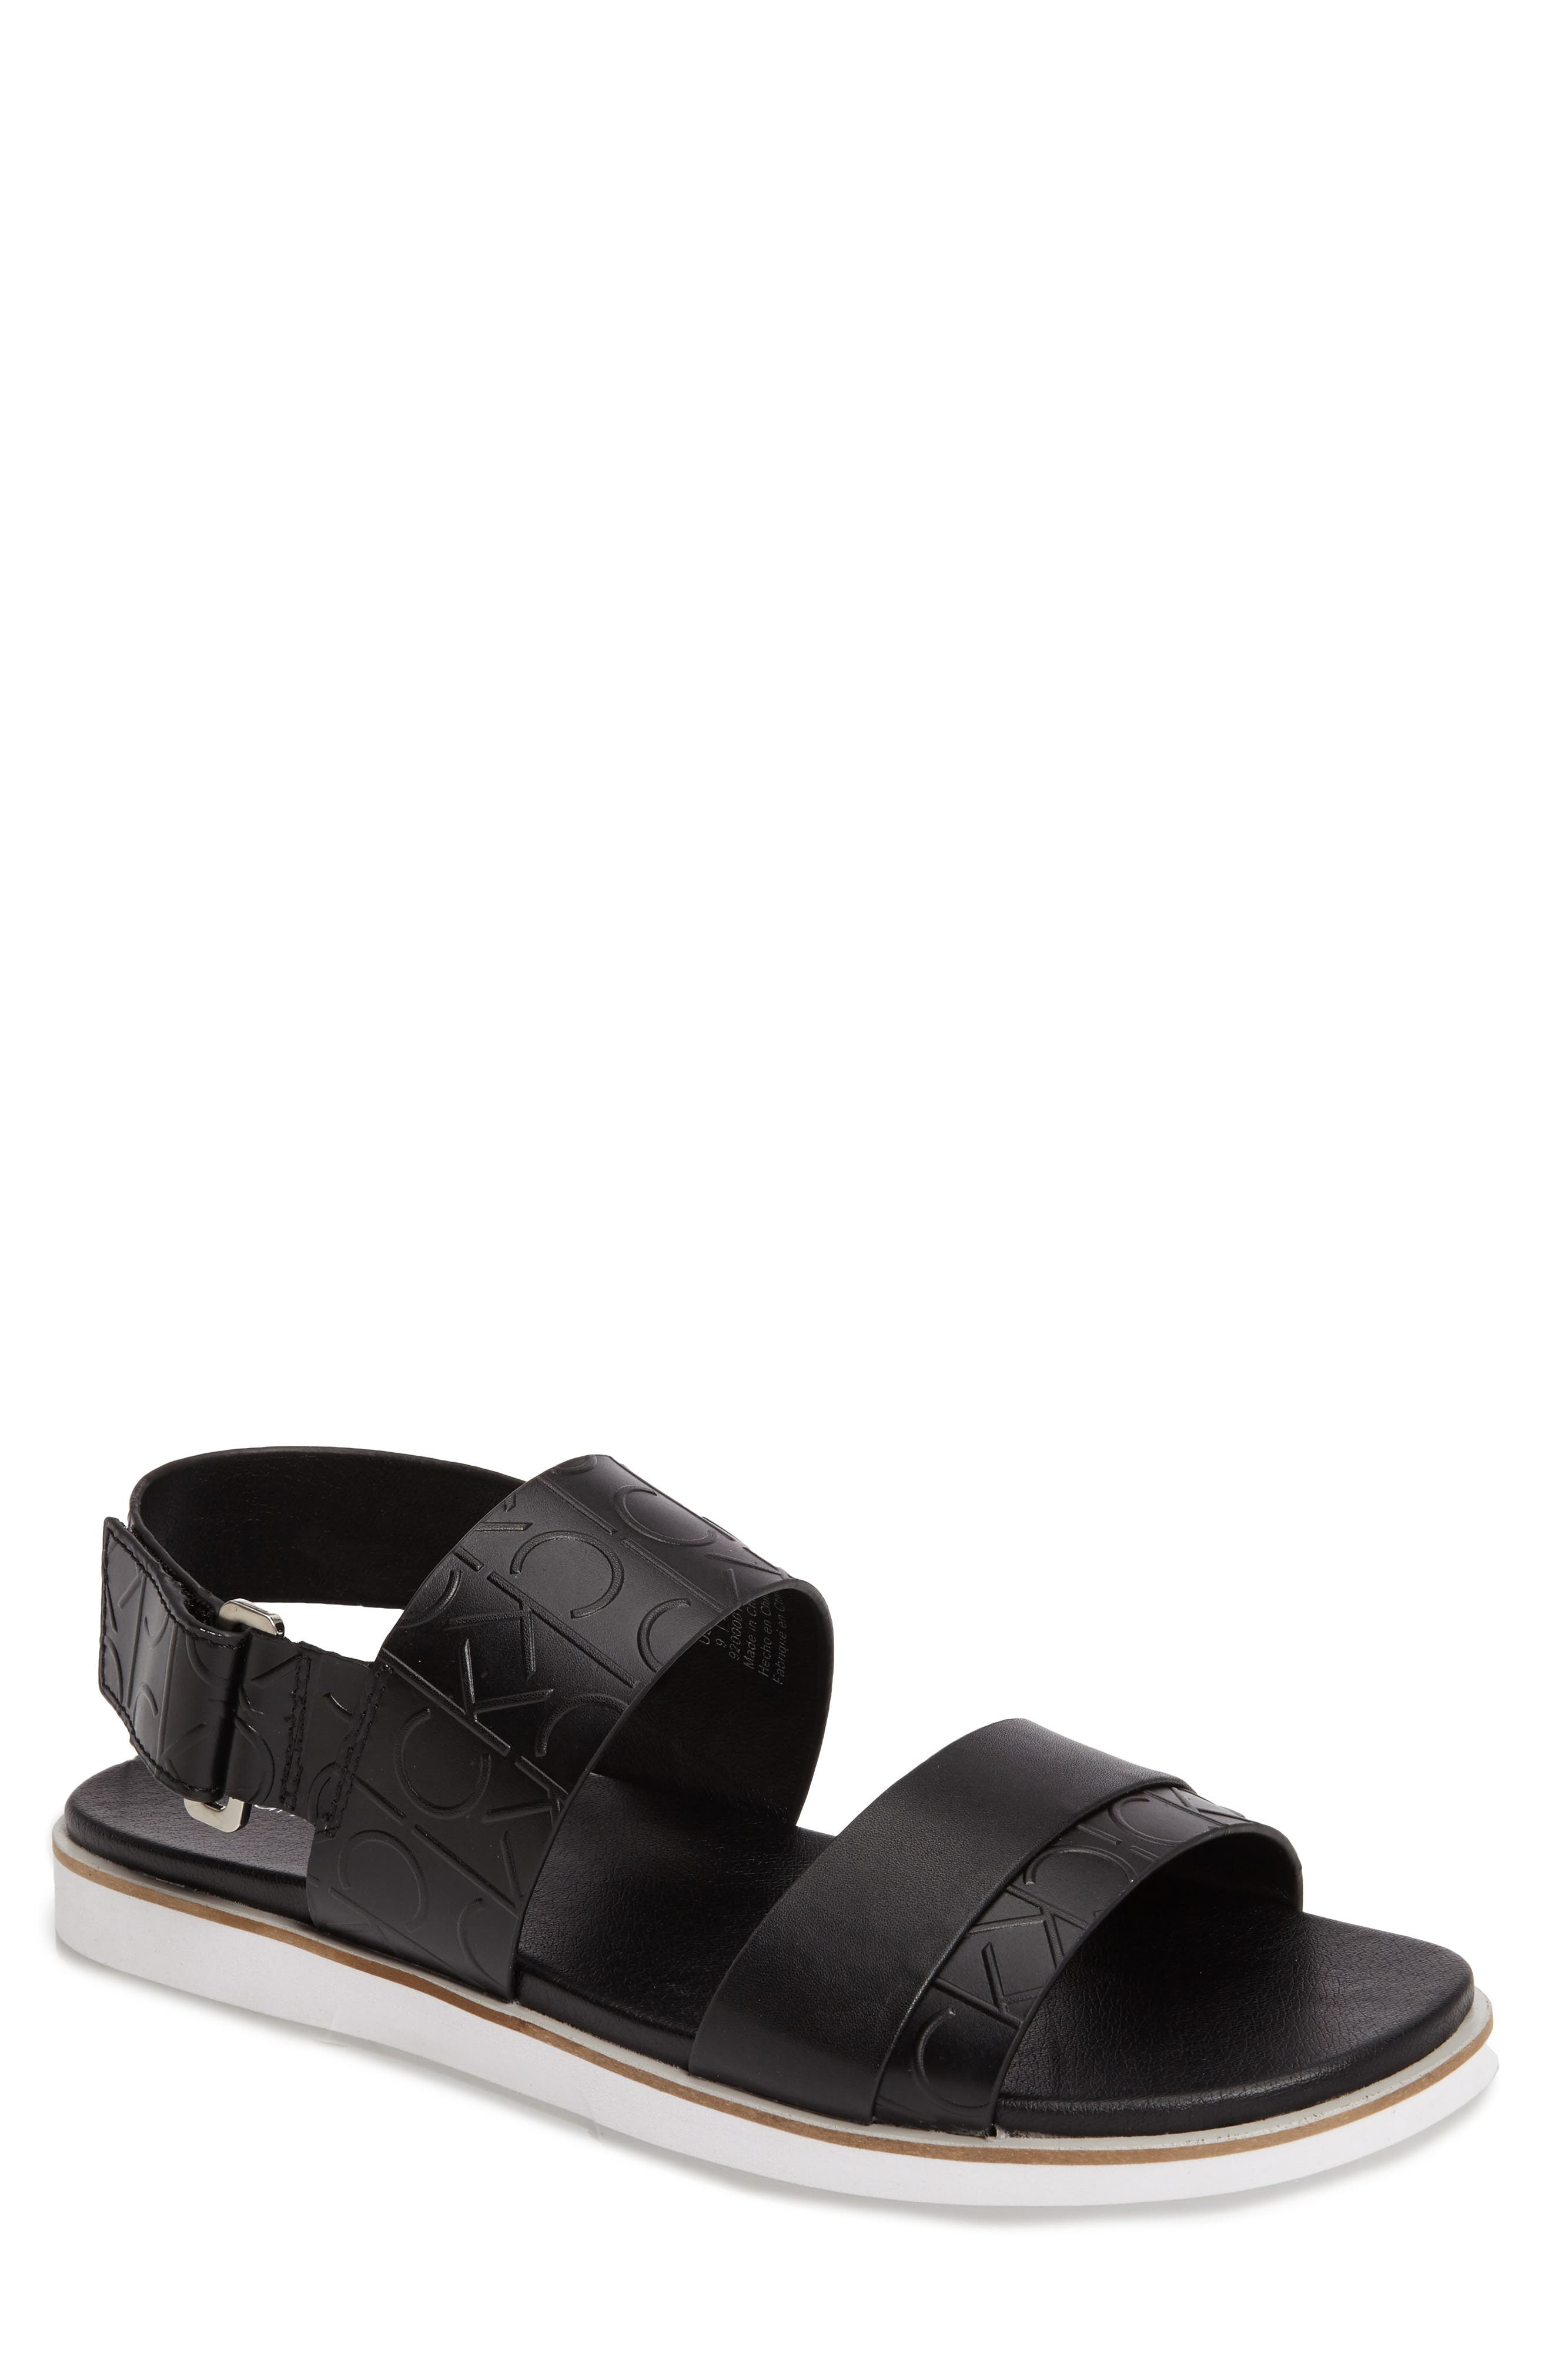 'Dex' Embossed Leather Sandal,                             Main thumbnail 2, color,